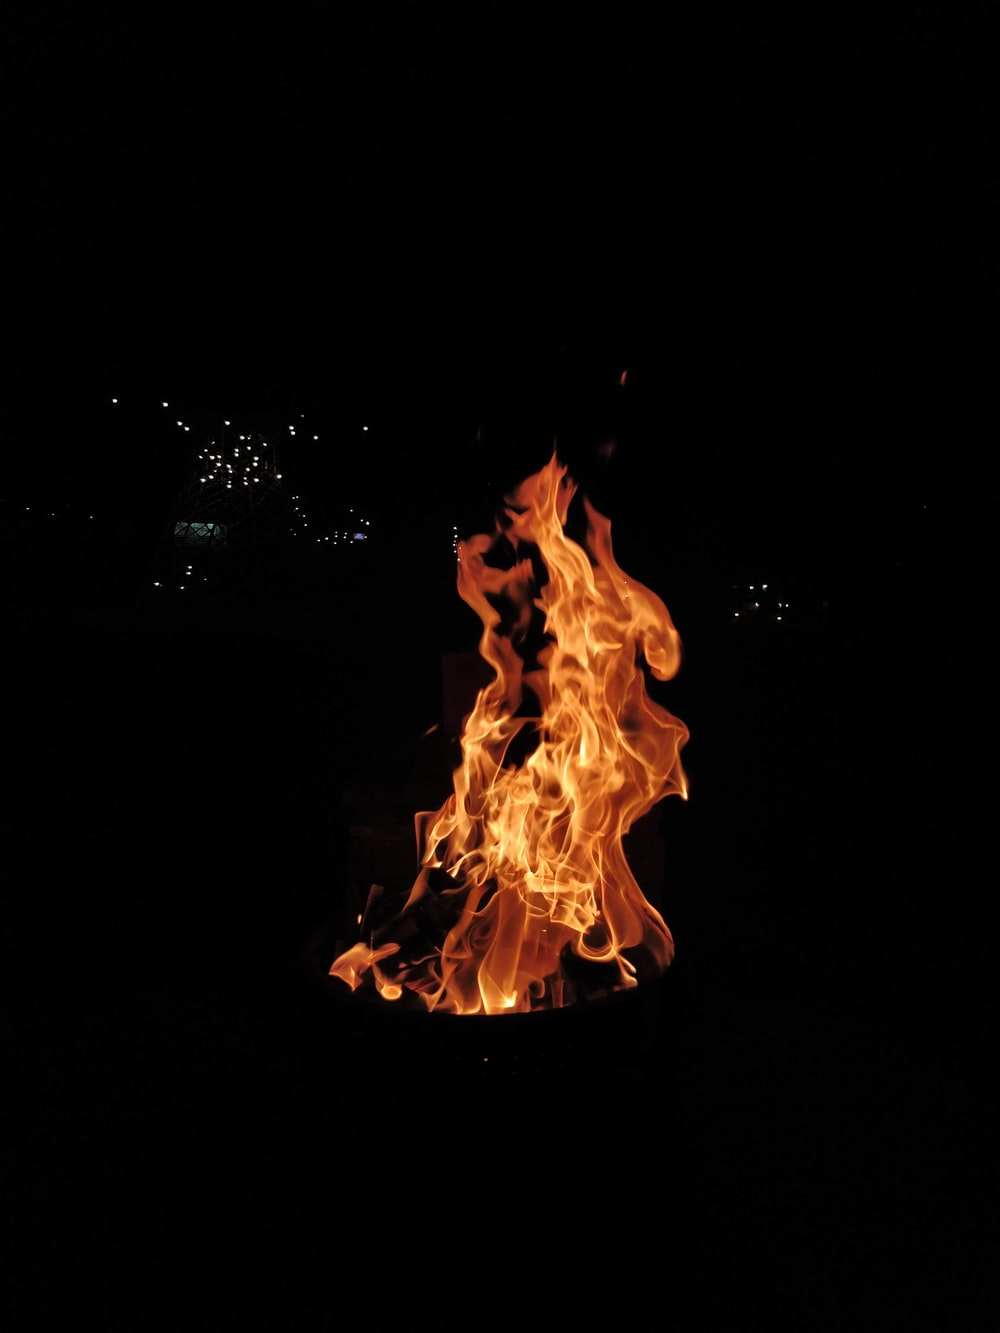 bonfire at night time